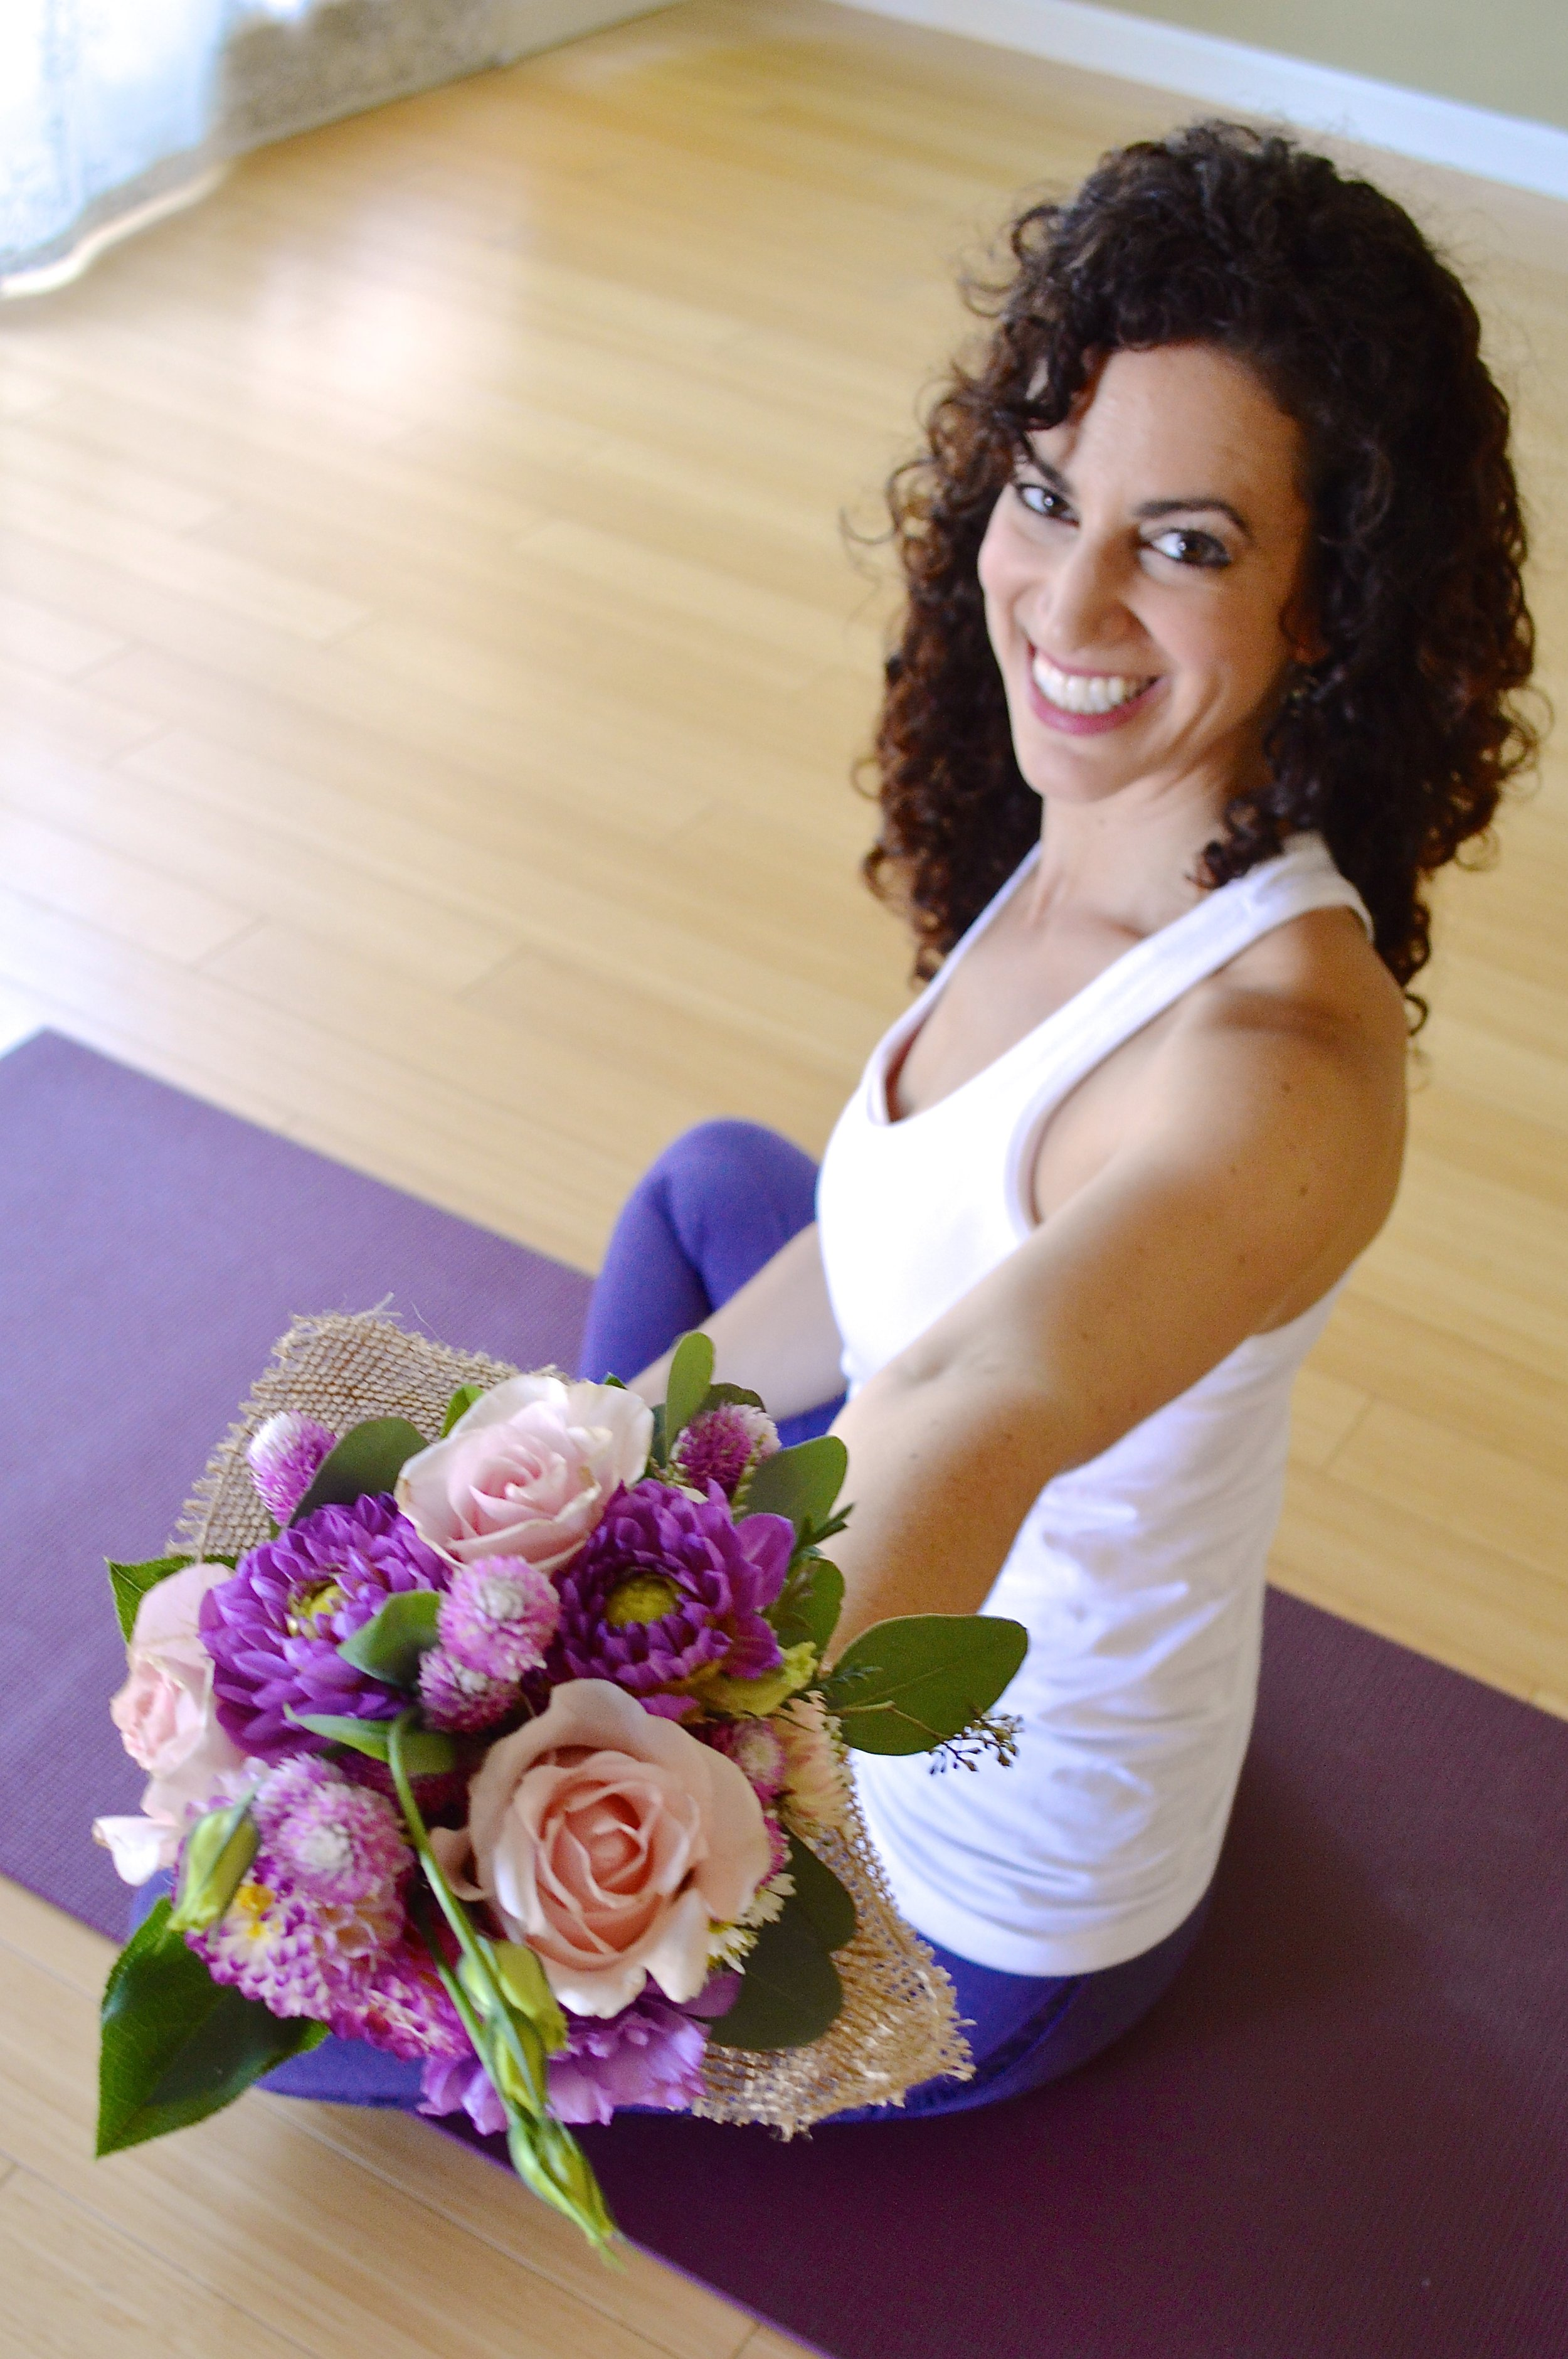 Wedding Wellness Program - 6 weeks of customized Yoga & Meditation practices, plus a personalized Nutrition ProgramDesigned by Robin Wilner…The Nutritious Yogini!